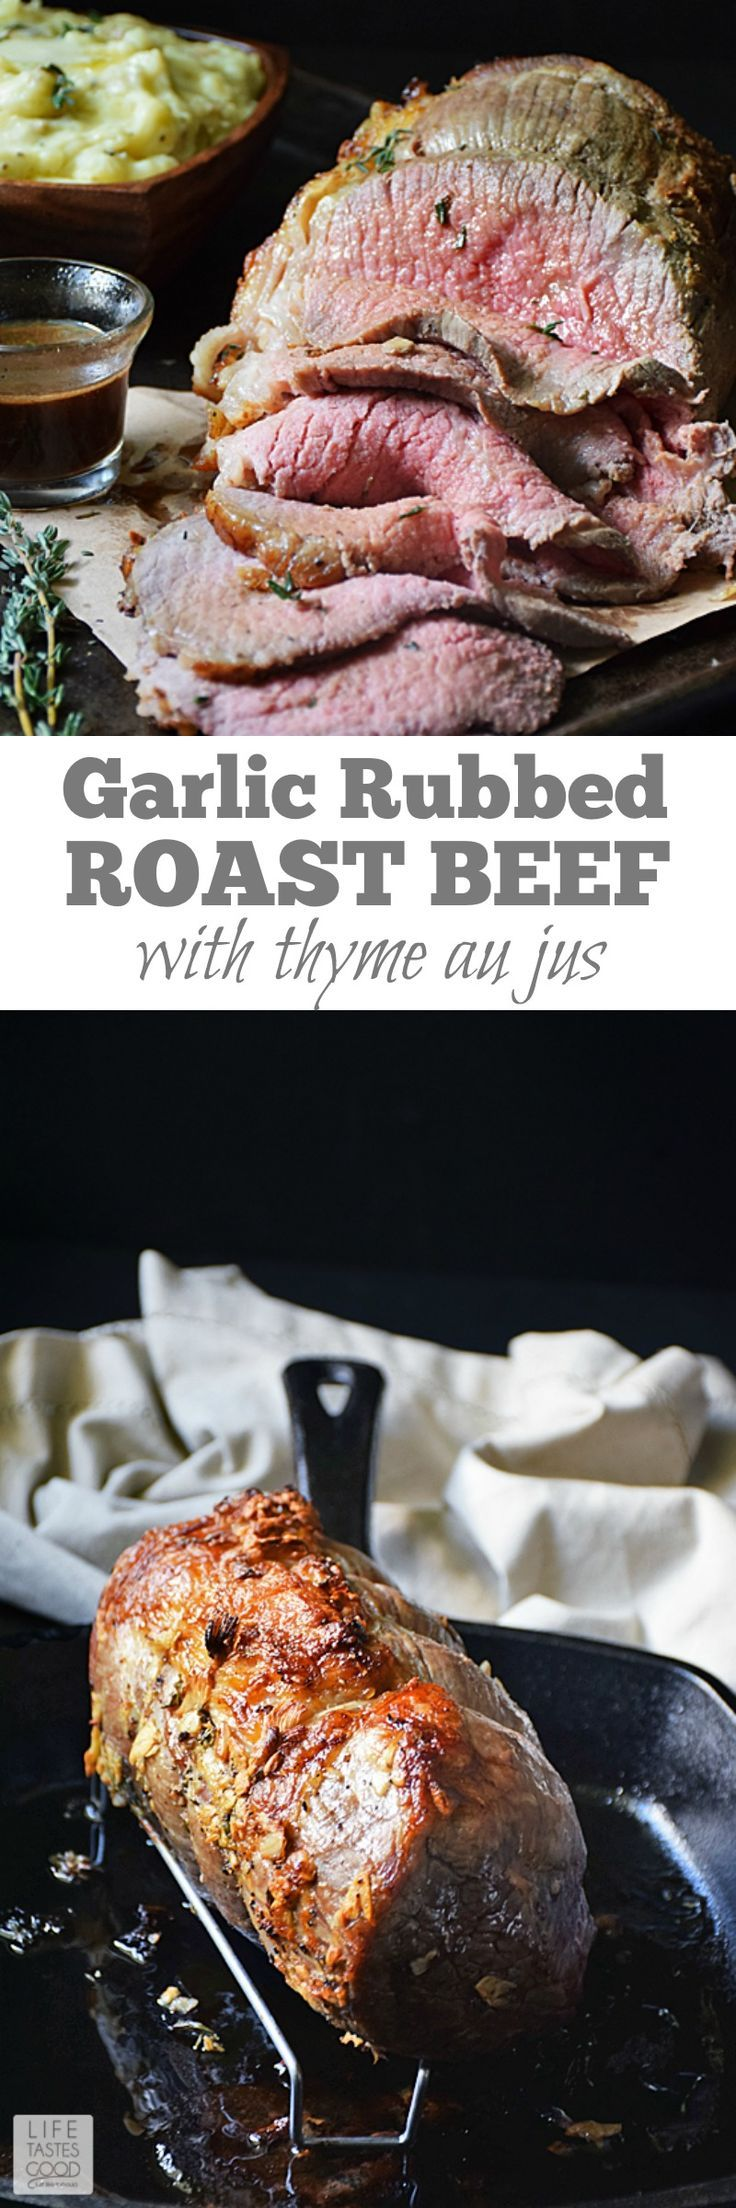 Gather the family around for #SundaySupper to enjoy this beautiful Garlic Roast Beef | by Life Tastes Good. With a crisp garlicky crust on the outside and juicy inside, this elegant meal is special enough for holidays! #LTGrecipes #SundaySupper #RoastPerfect /certangusbeef/ #sponsored